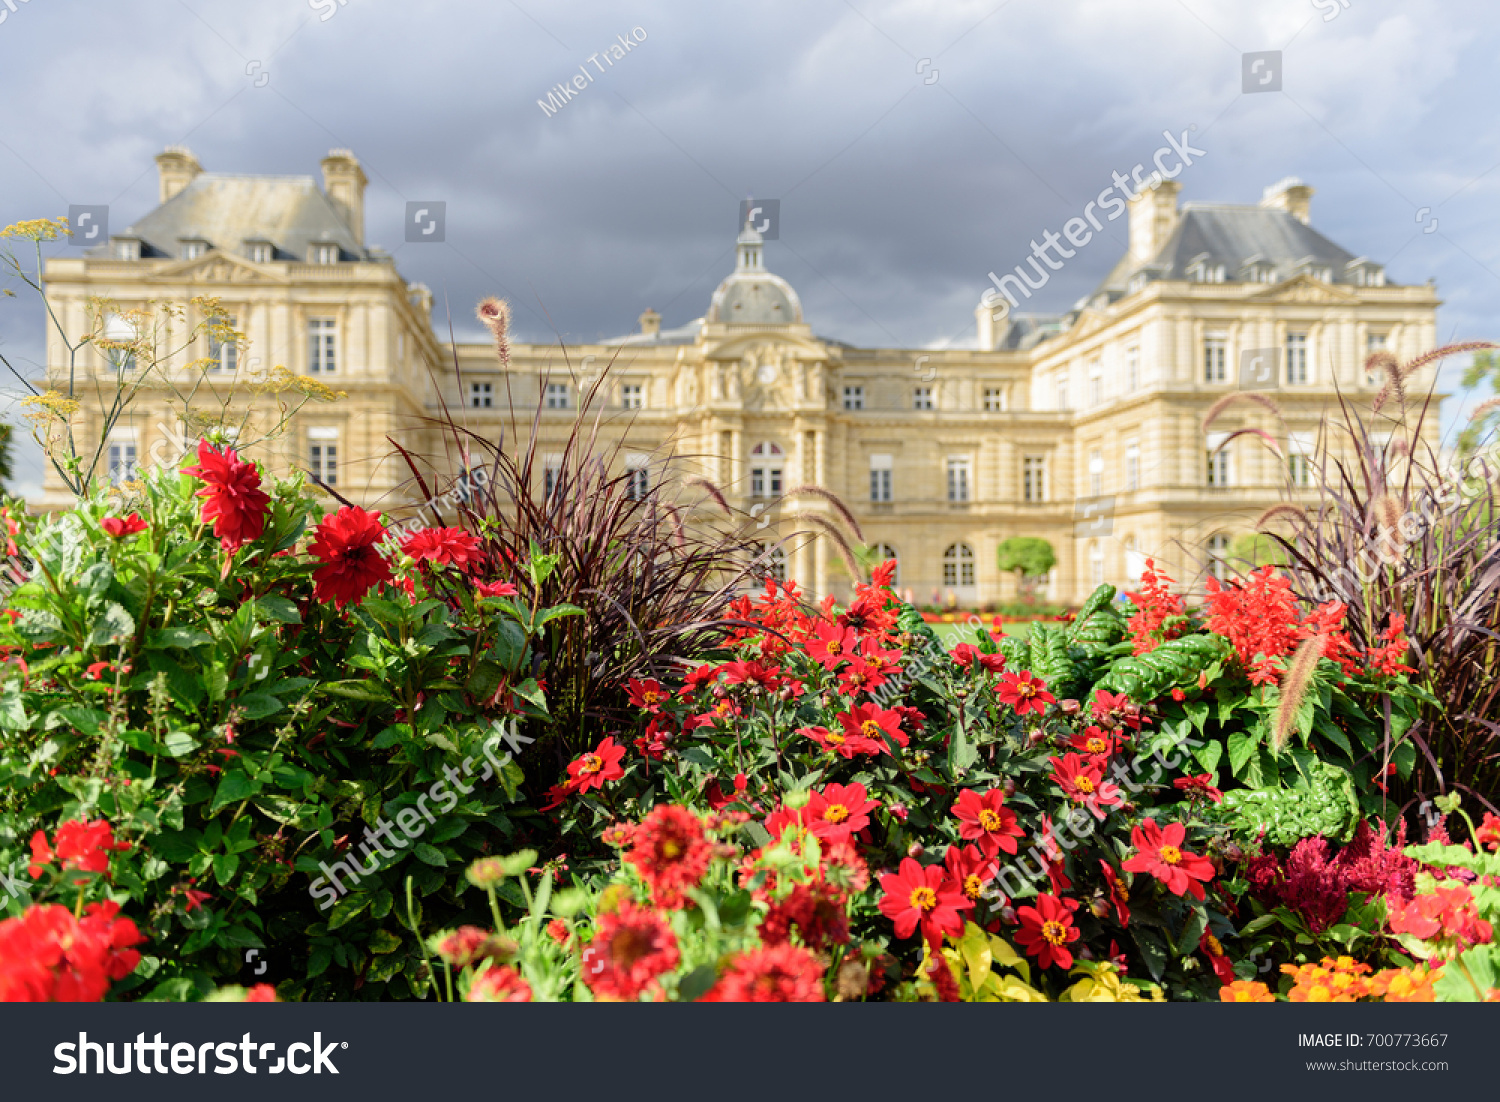 the luxembourg palace jardin du luxembourg paris france - Jardin Du Luxembourg Paris